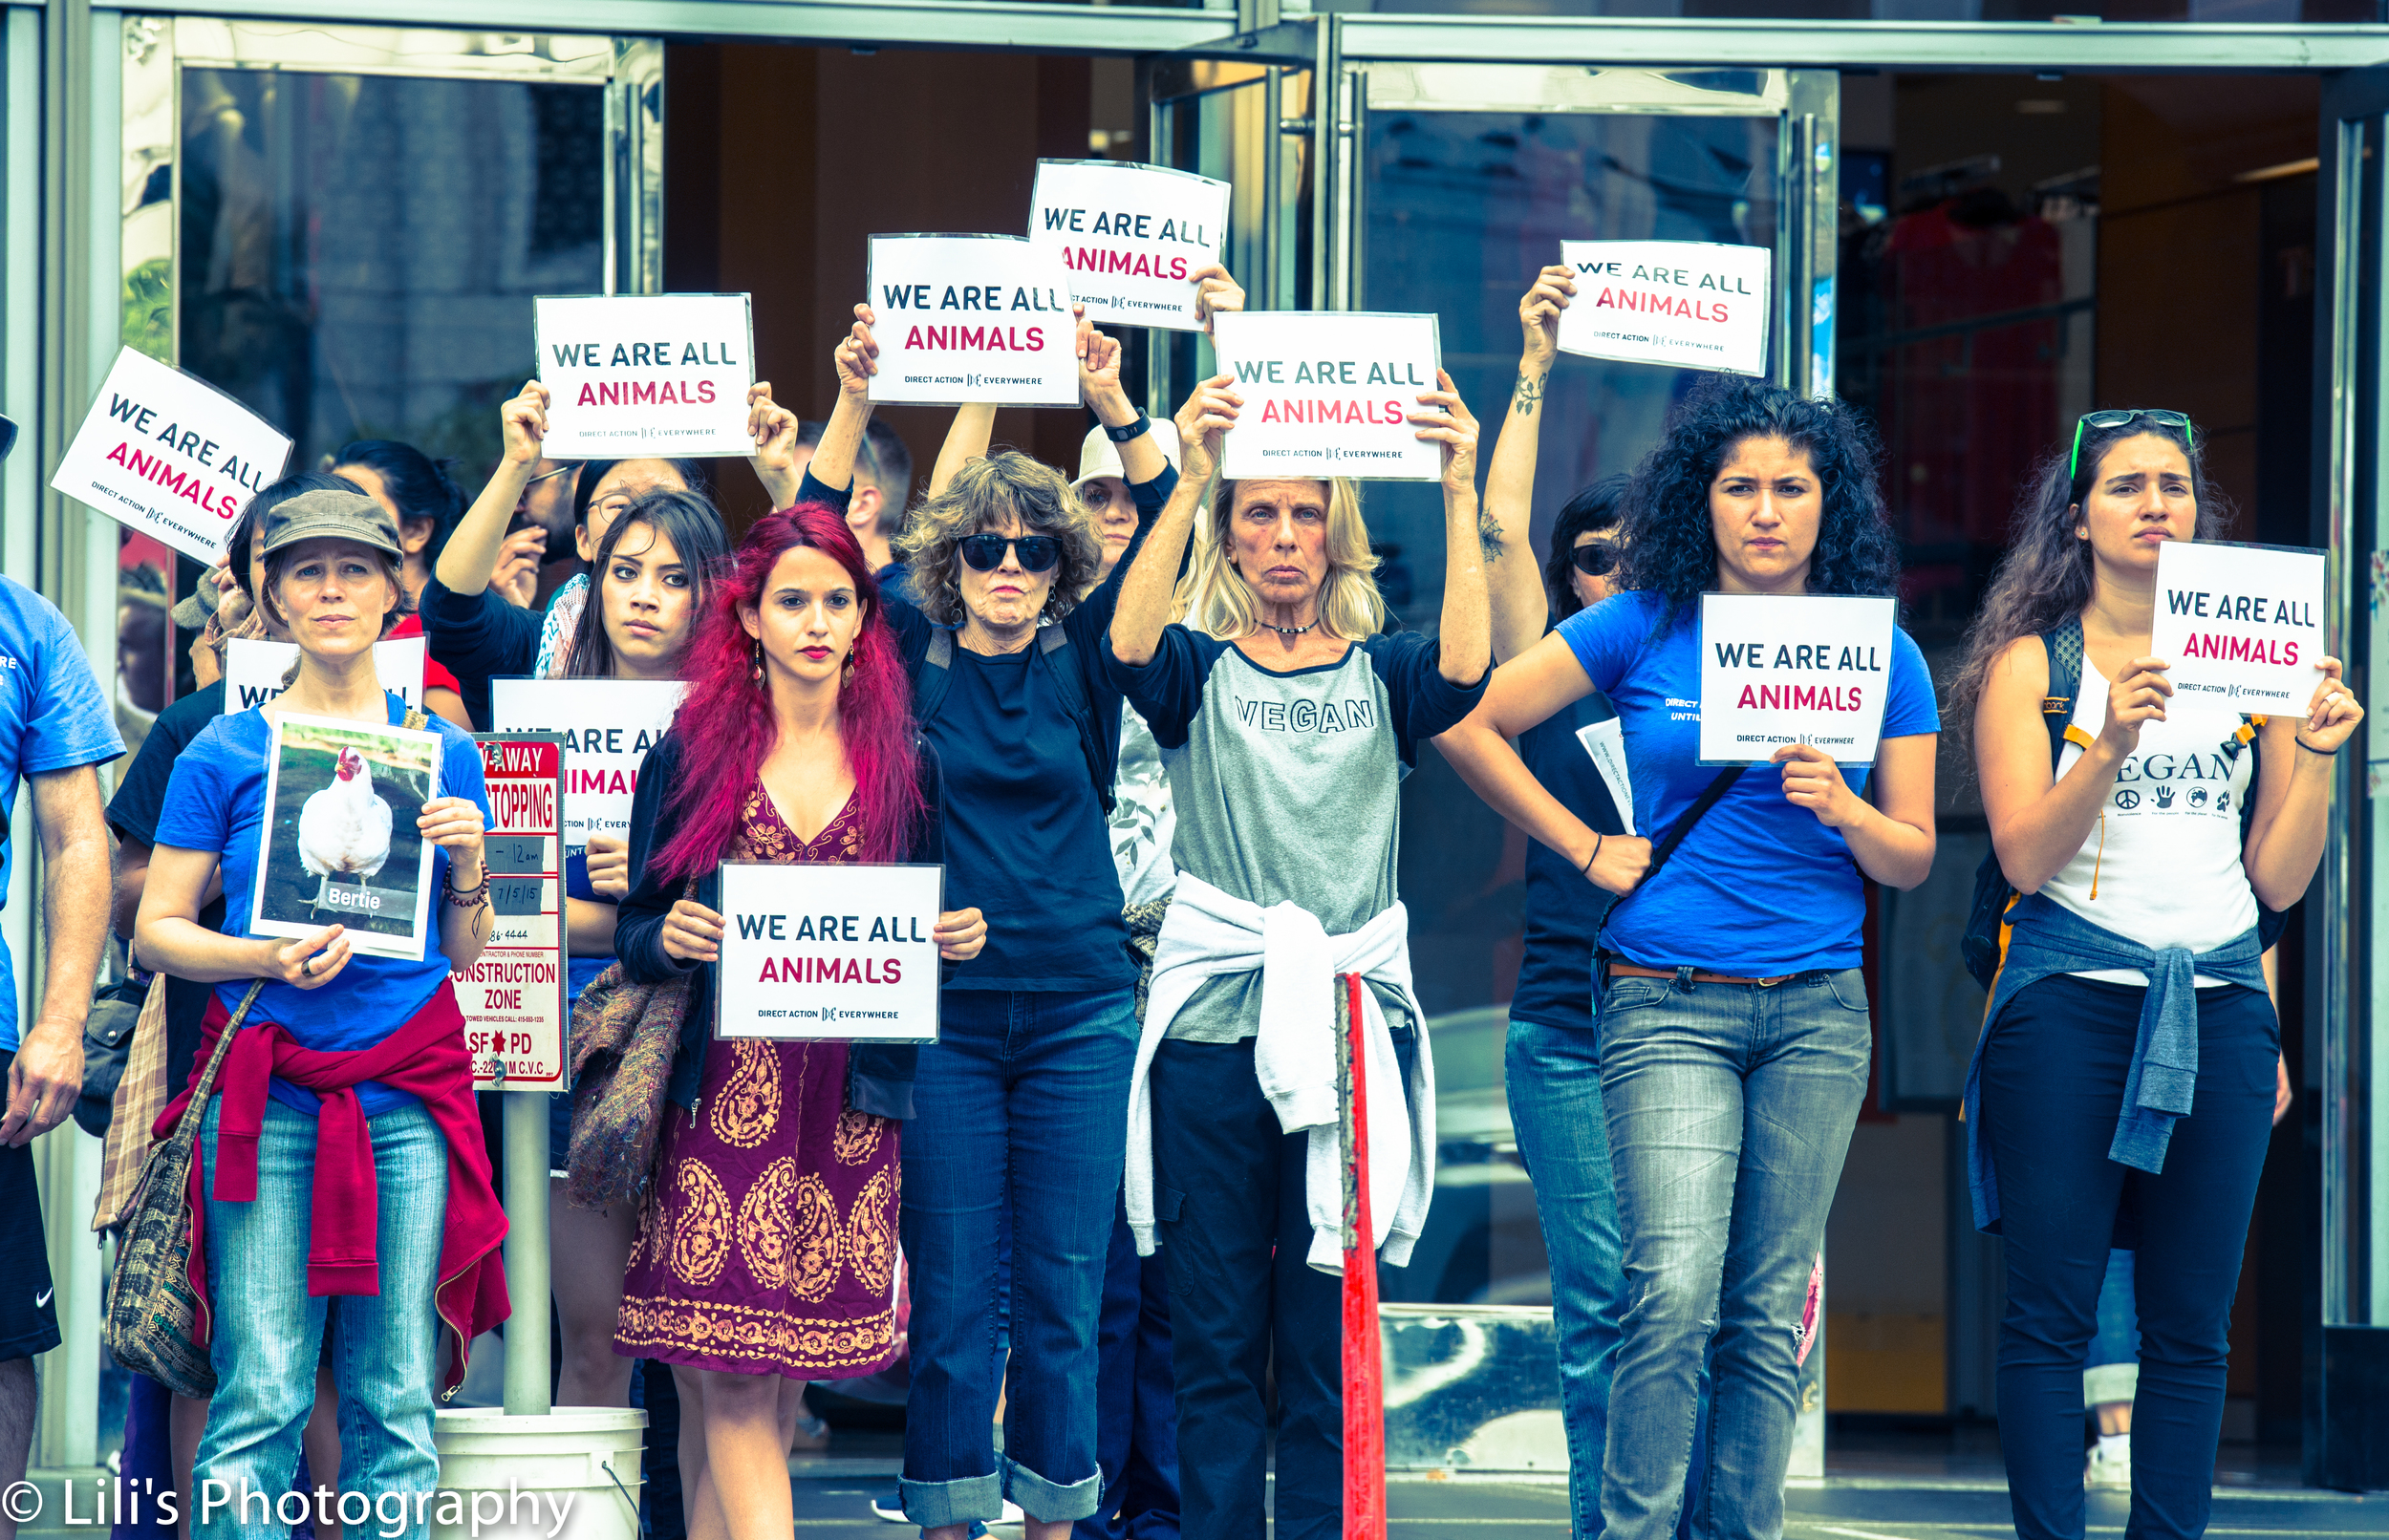 Women standing strong for animal rights.